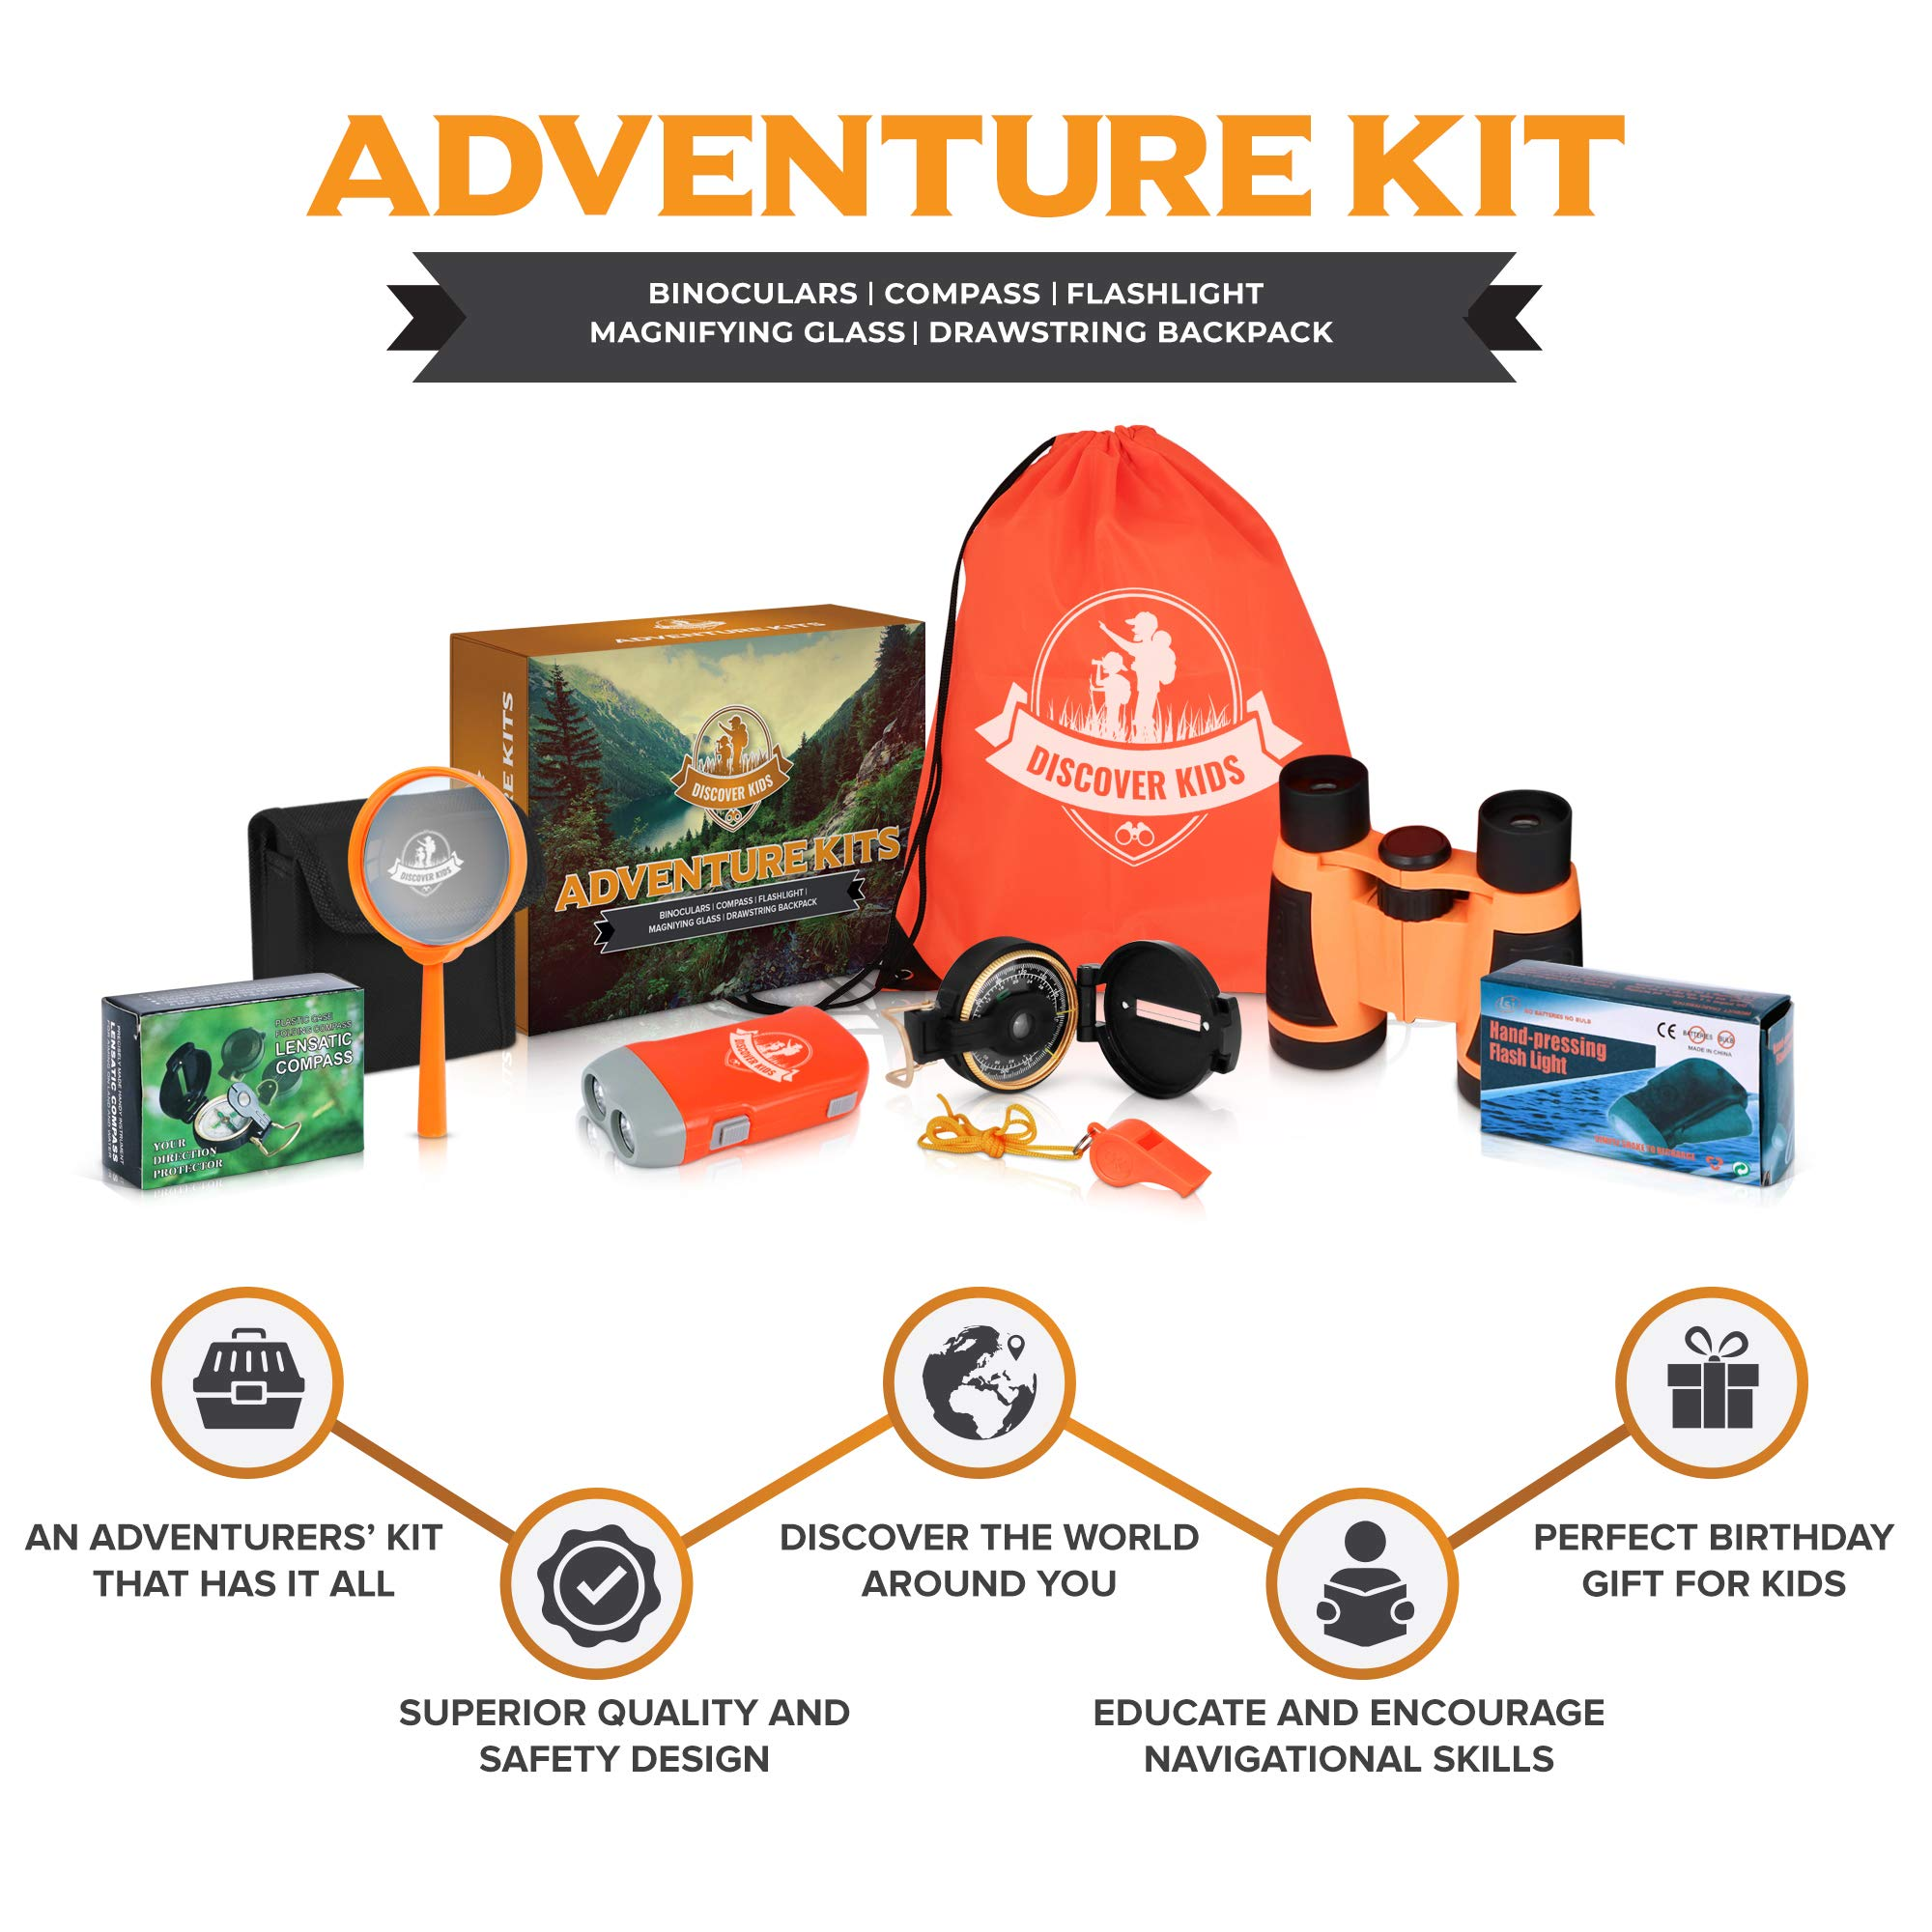 Discover Kids - Outdoor Exploration and Adventure Kit - Children's Toys, Binoculars, Flashlight, Compass, Whistle, Magnifying Glass, Backpack. Designed for Children, Great STEM Gift for Kids